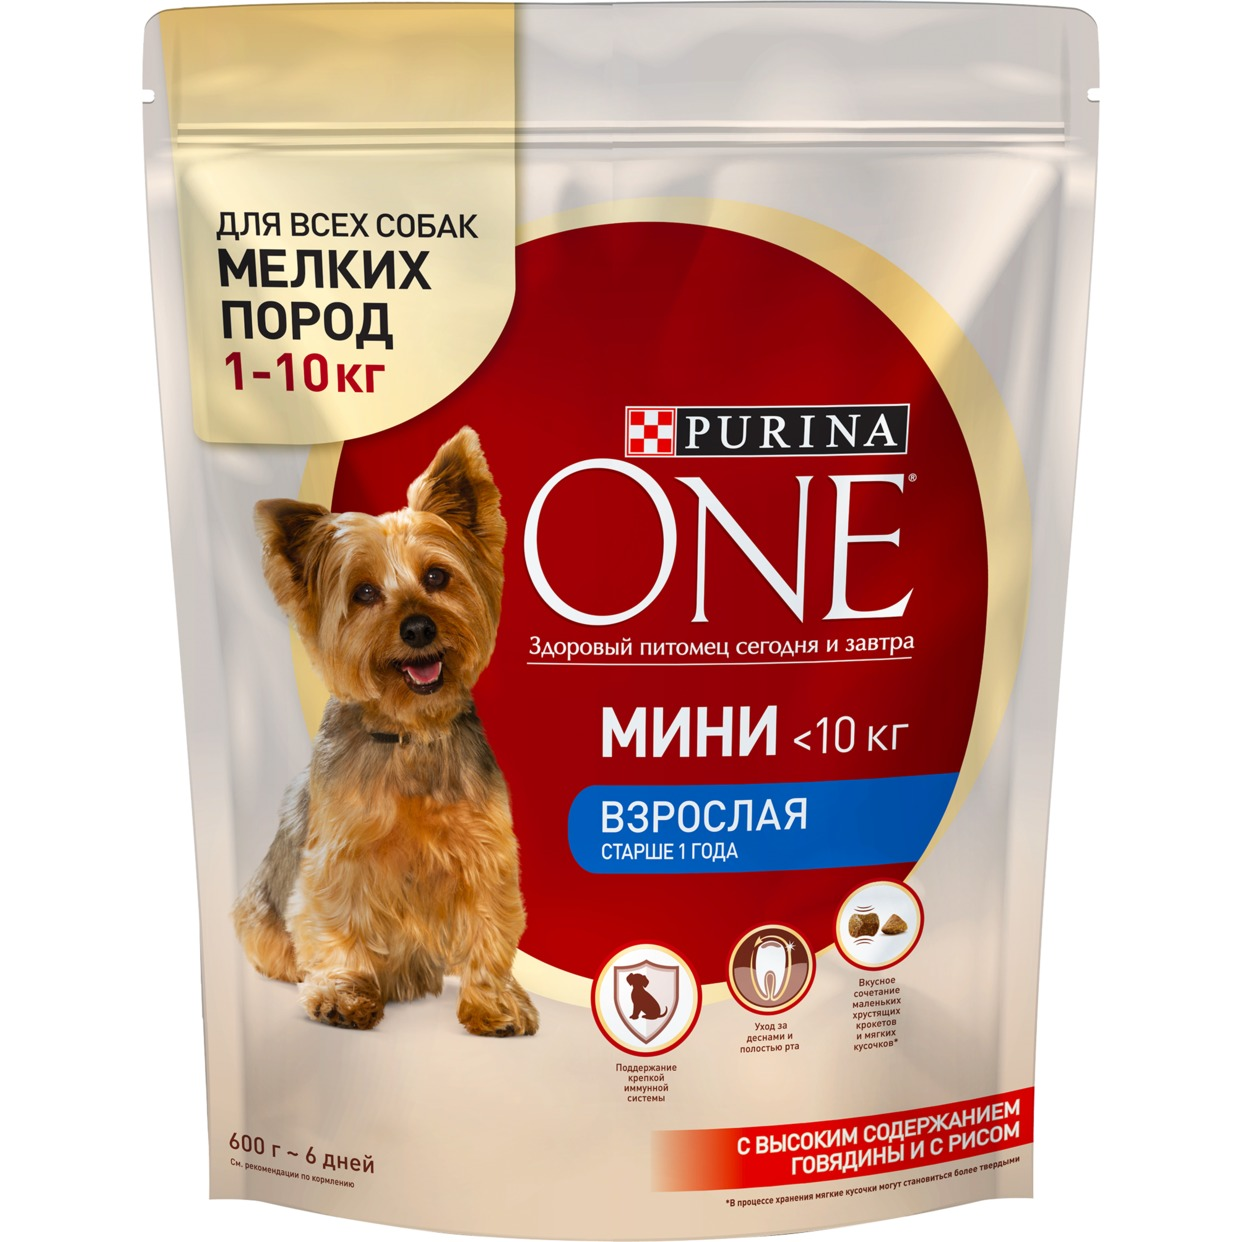 Корм для собак Purina One, сухой, говядина-рис, 600 г